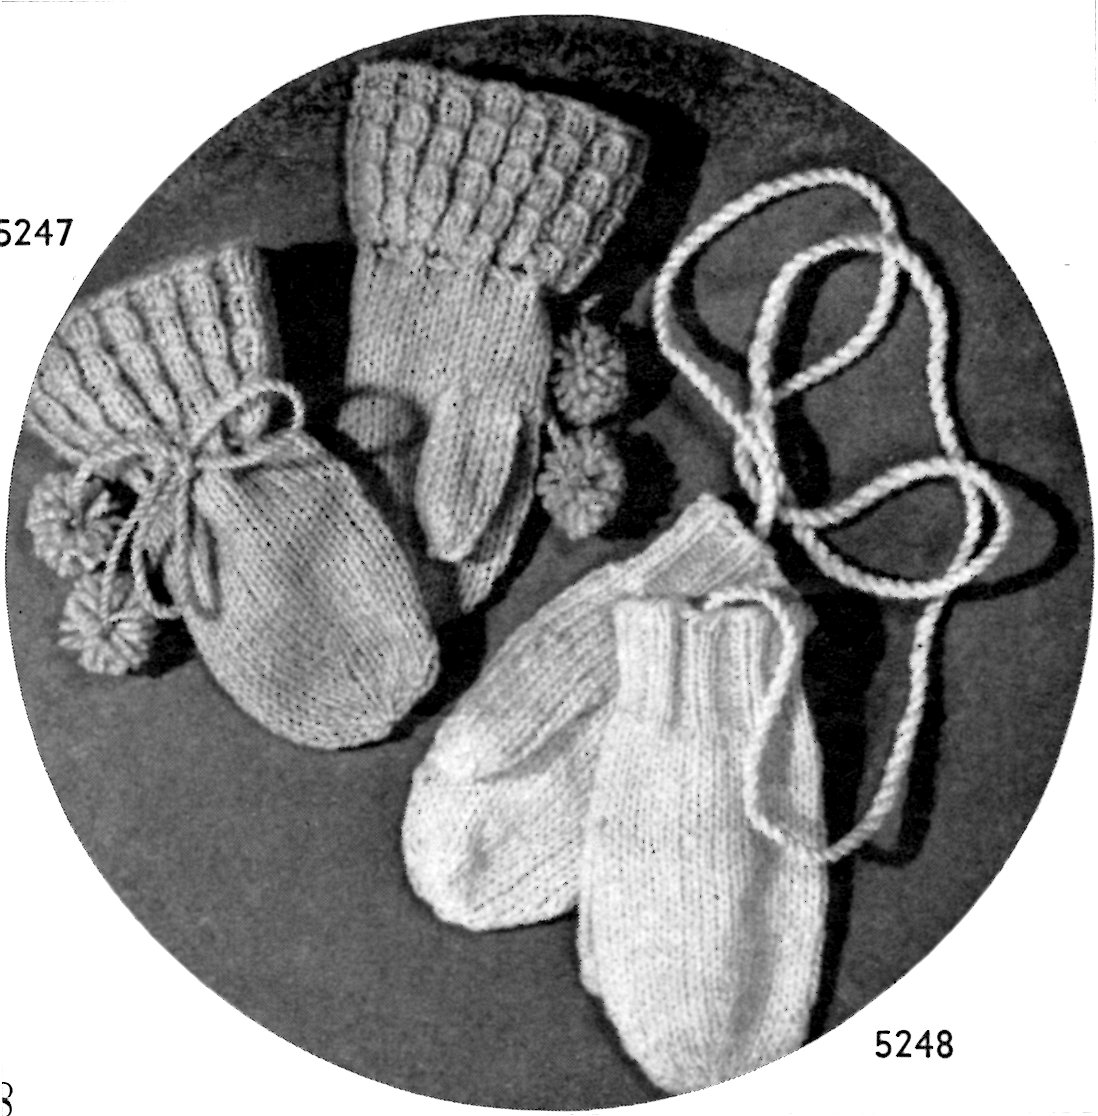 Vintage Baby Mittens Knitting Pattern - Vintage Crafts and More